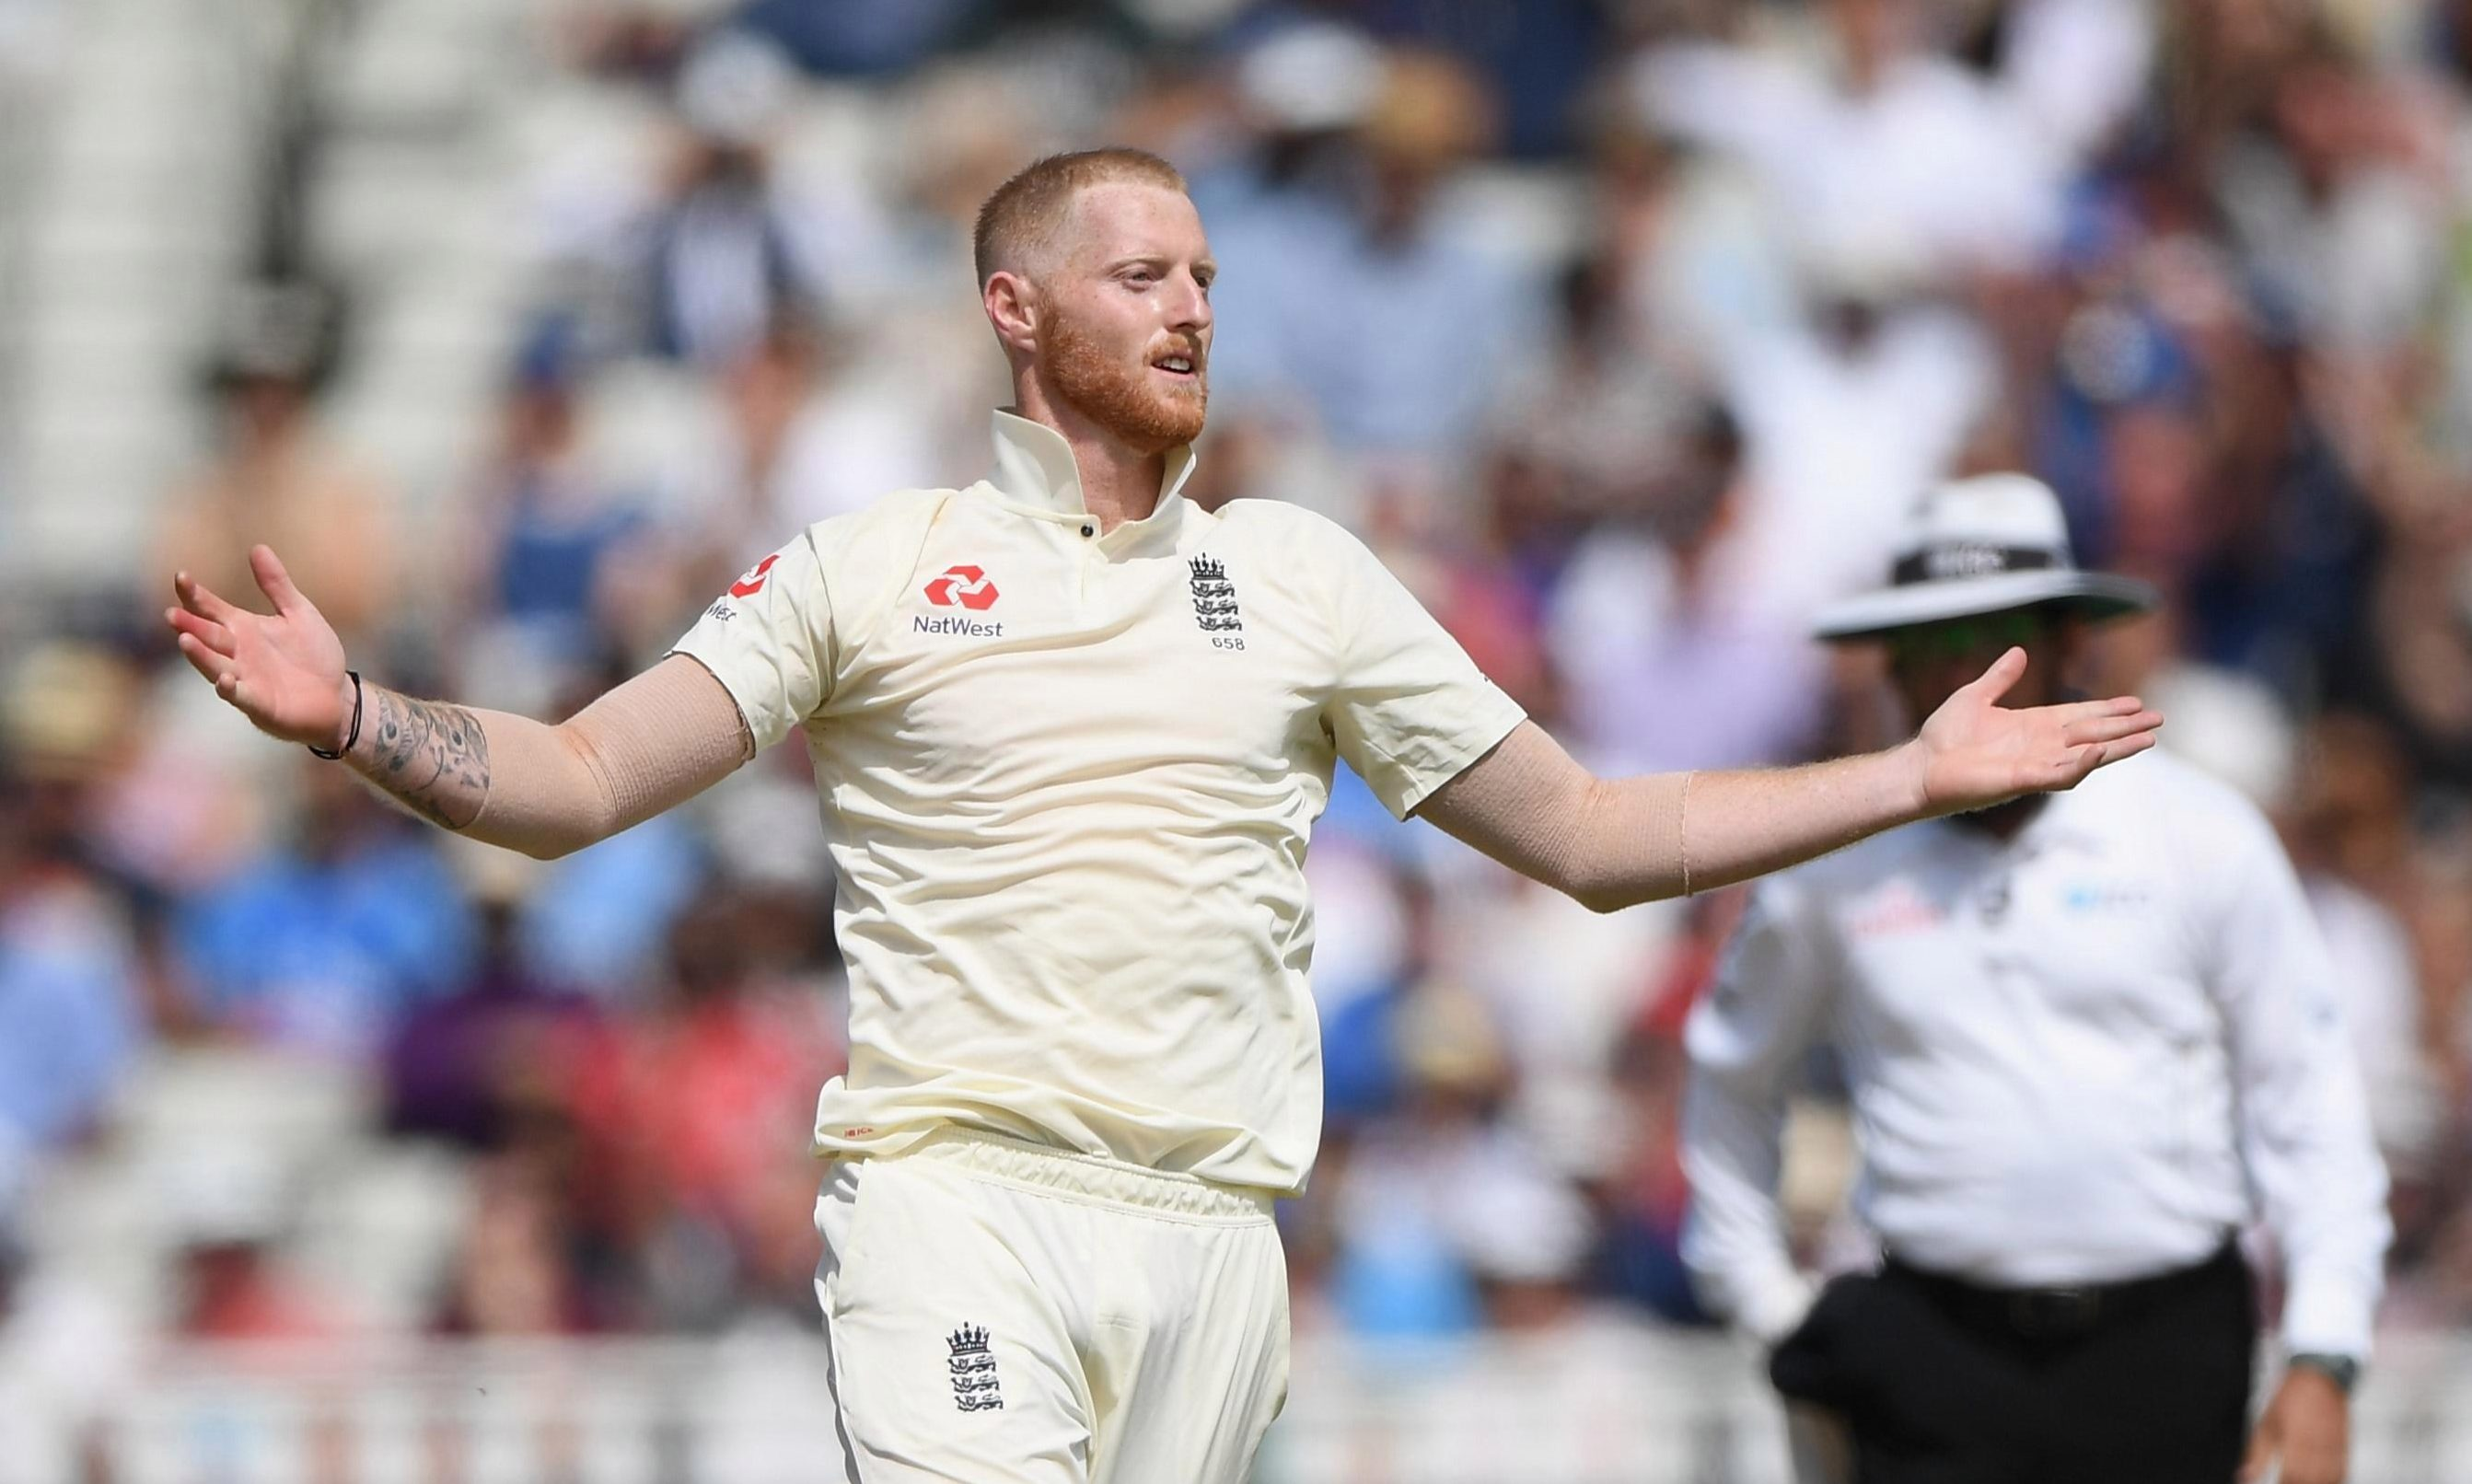 Ben Stokes still hopes to play a further part as England bid to complete a Test series triumph over India, who are the world's top-ranked team